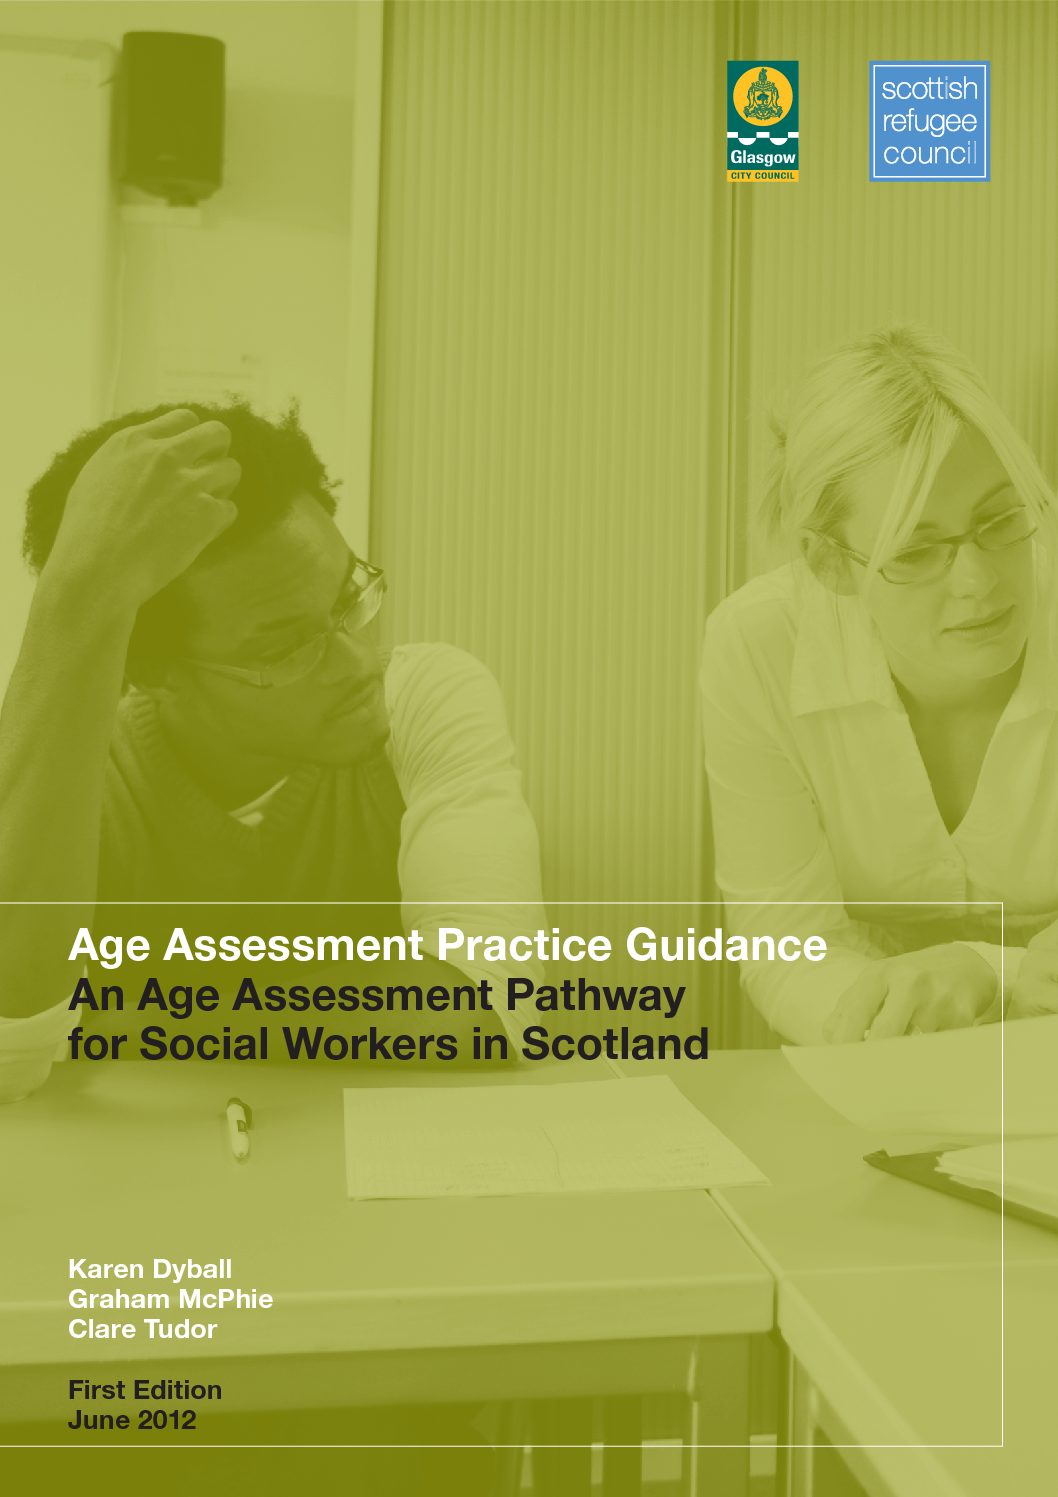 Age-Assessment-Practice-Guidance-An-Age-Assessment-Pathway-for-Social-Workers-in-Scotland-PDF-pdf